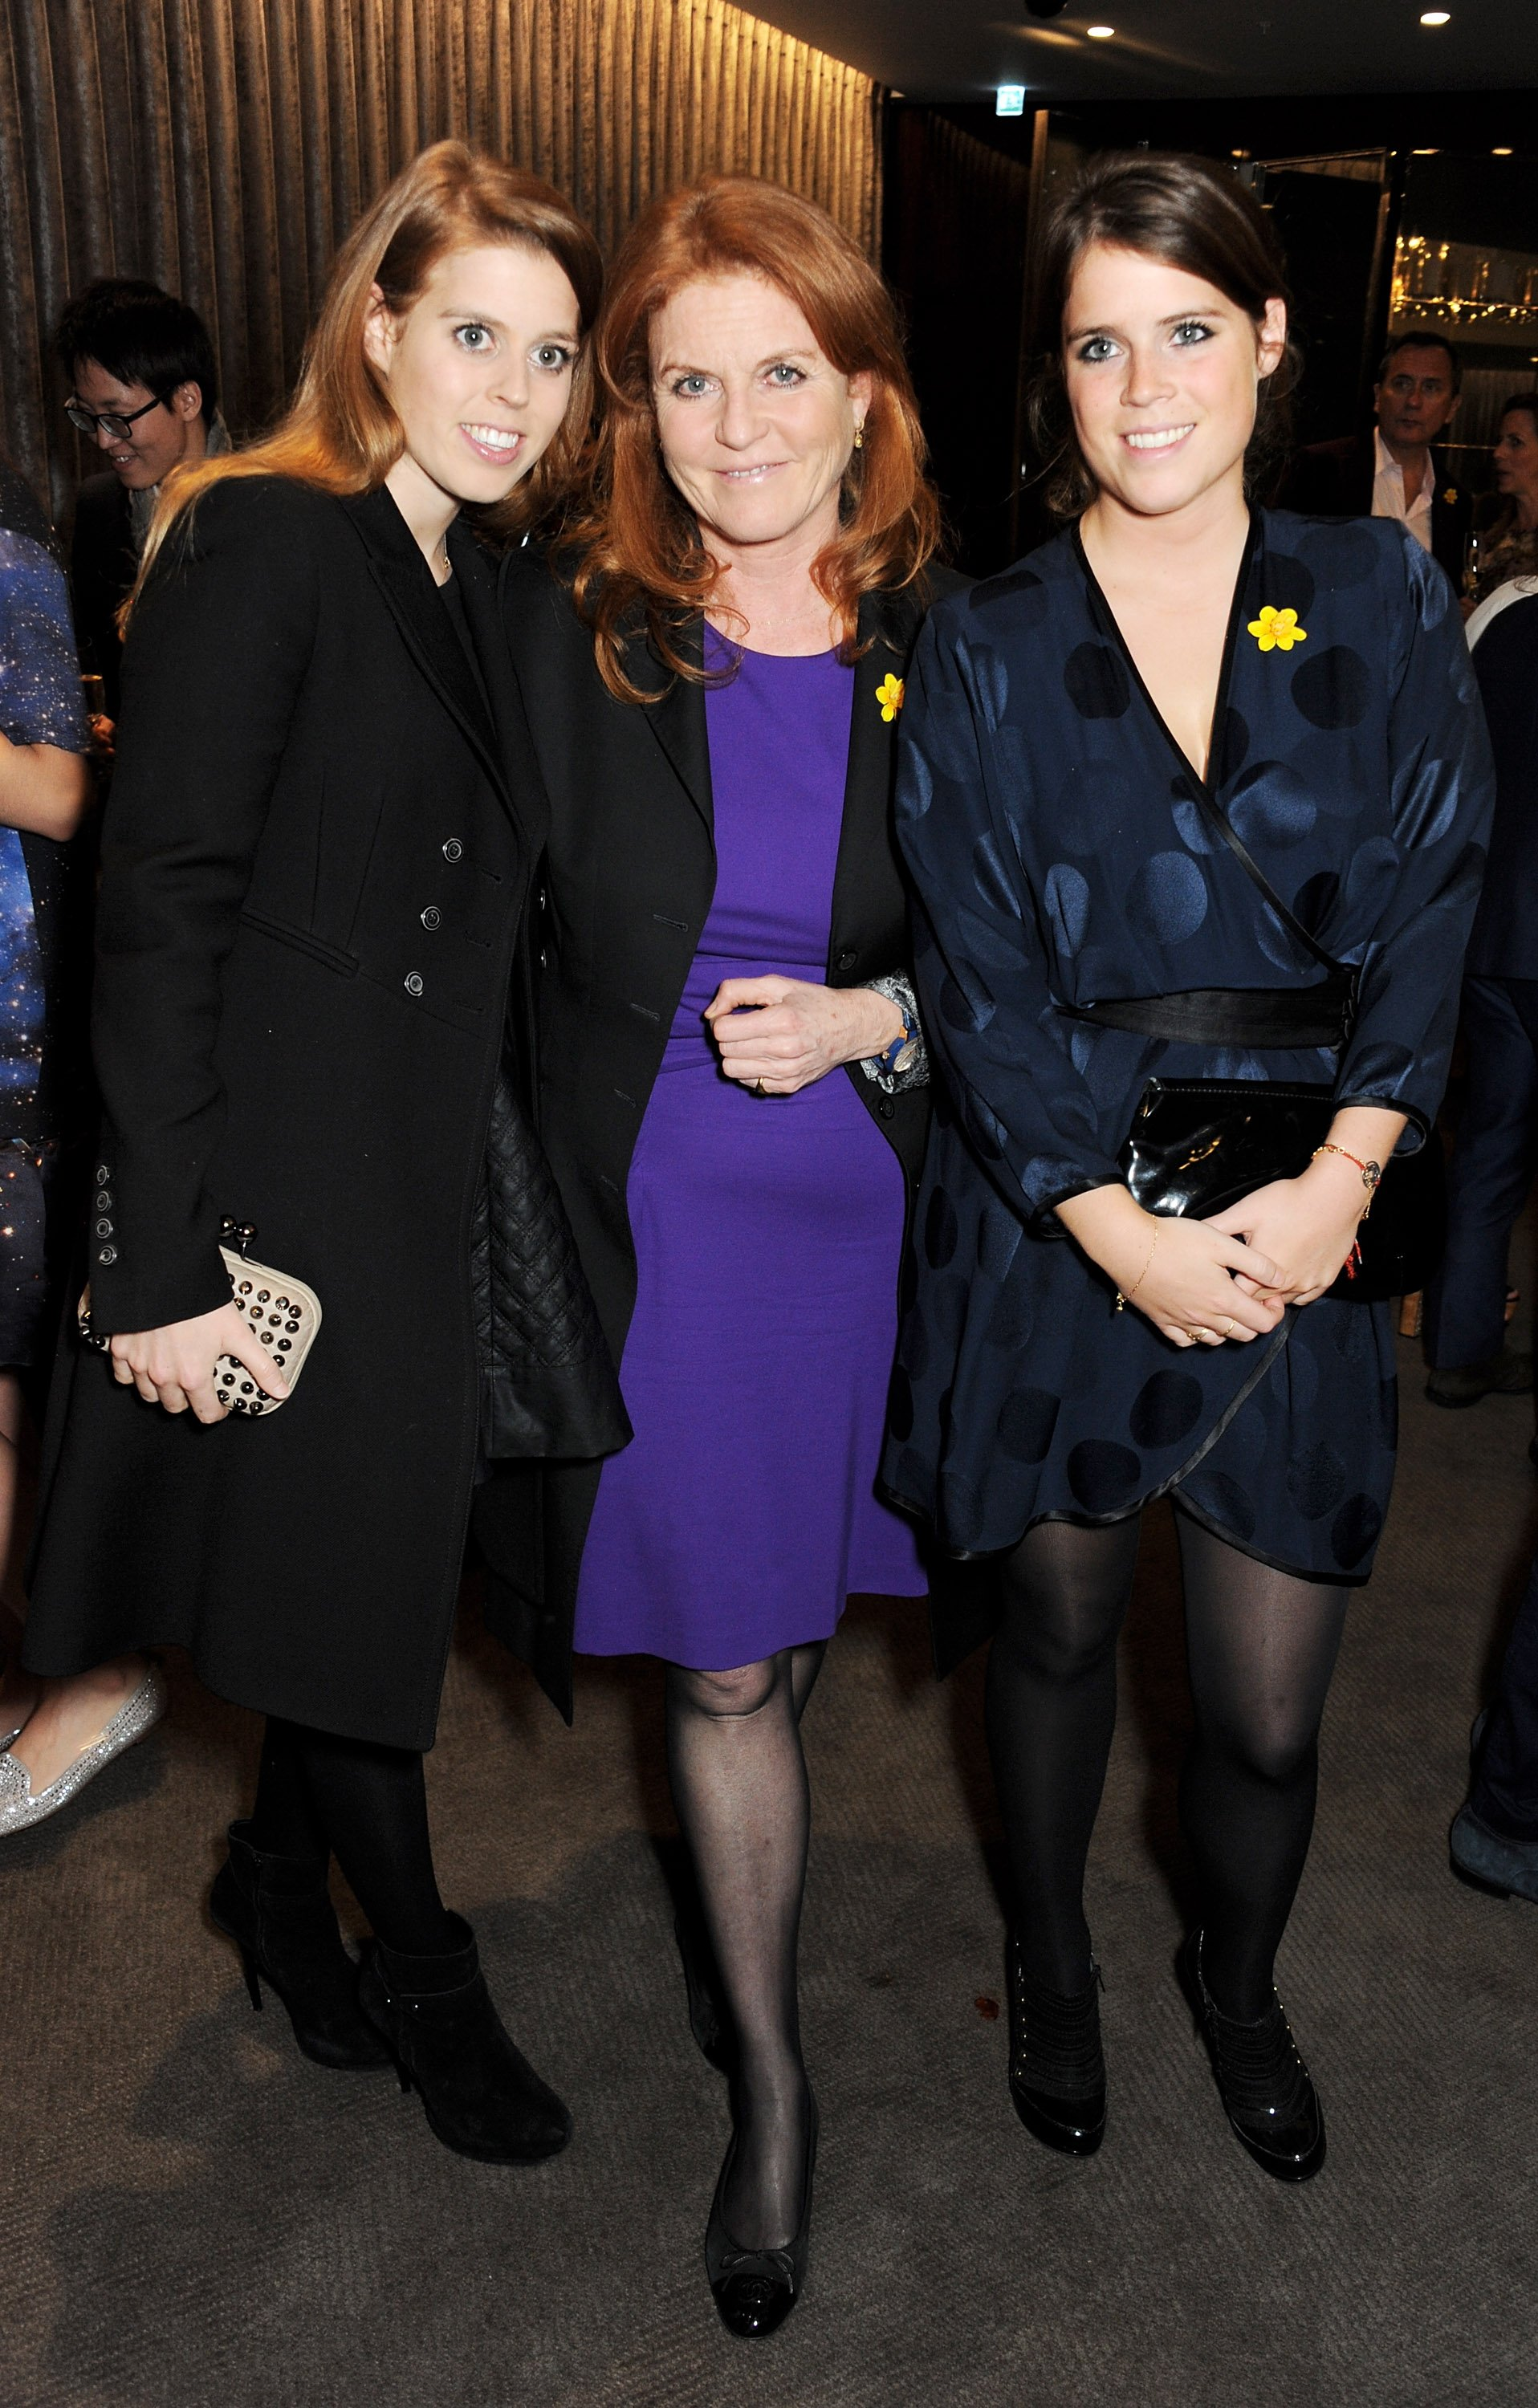 Princess Beatrice, Sarah Ferguson, and Princess Eugenie of York attend a charity auction for the Samsung NX Camera launch in London, England on May 14, 2013 | Photo: Getty Images